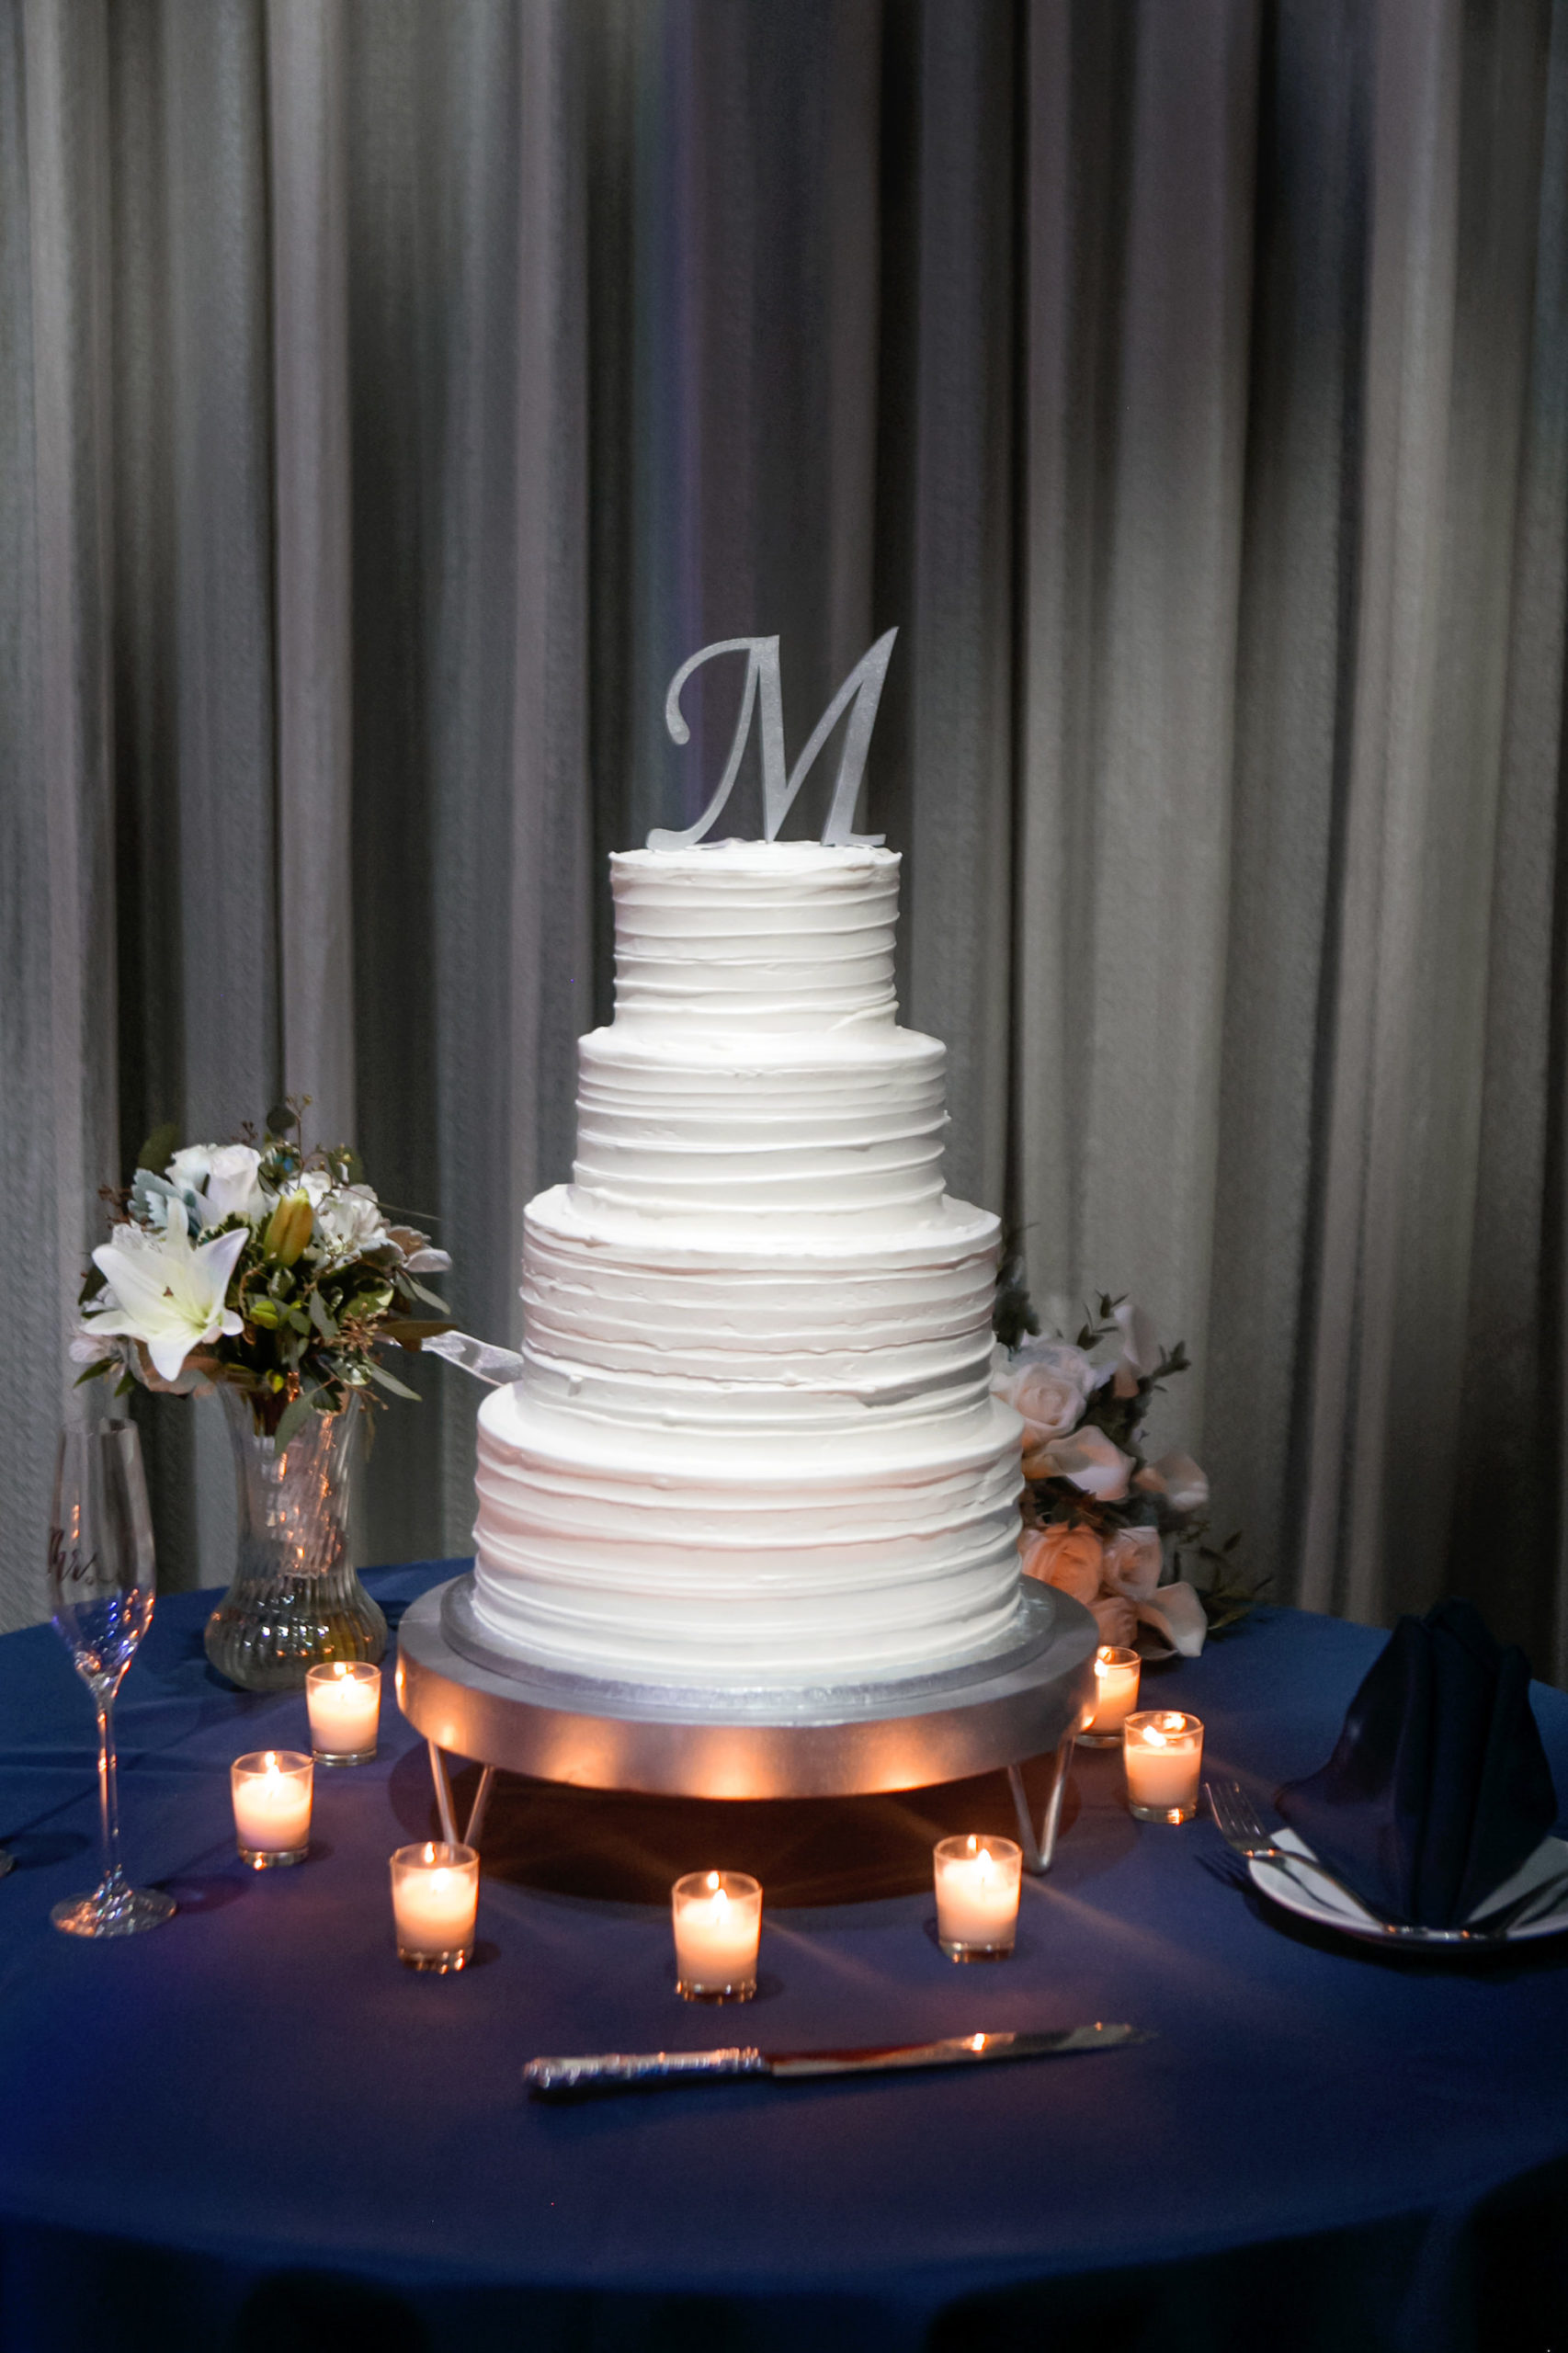 Simple Classic White Four Tier Wedding Cake with Silver Initial Cake Topper   Tampa Bay Wedding Photographer Carrie Wildes Photography   Wedding Planner Love Lee Lane